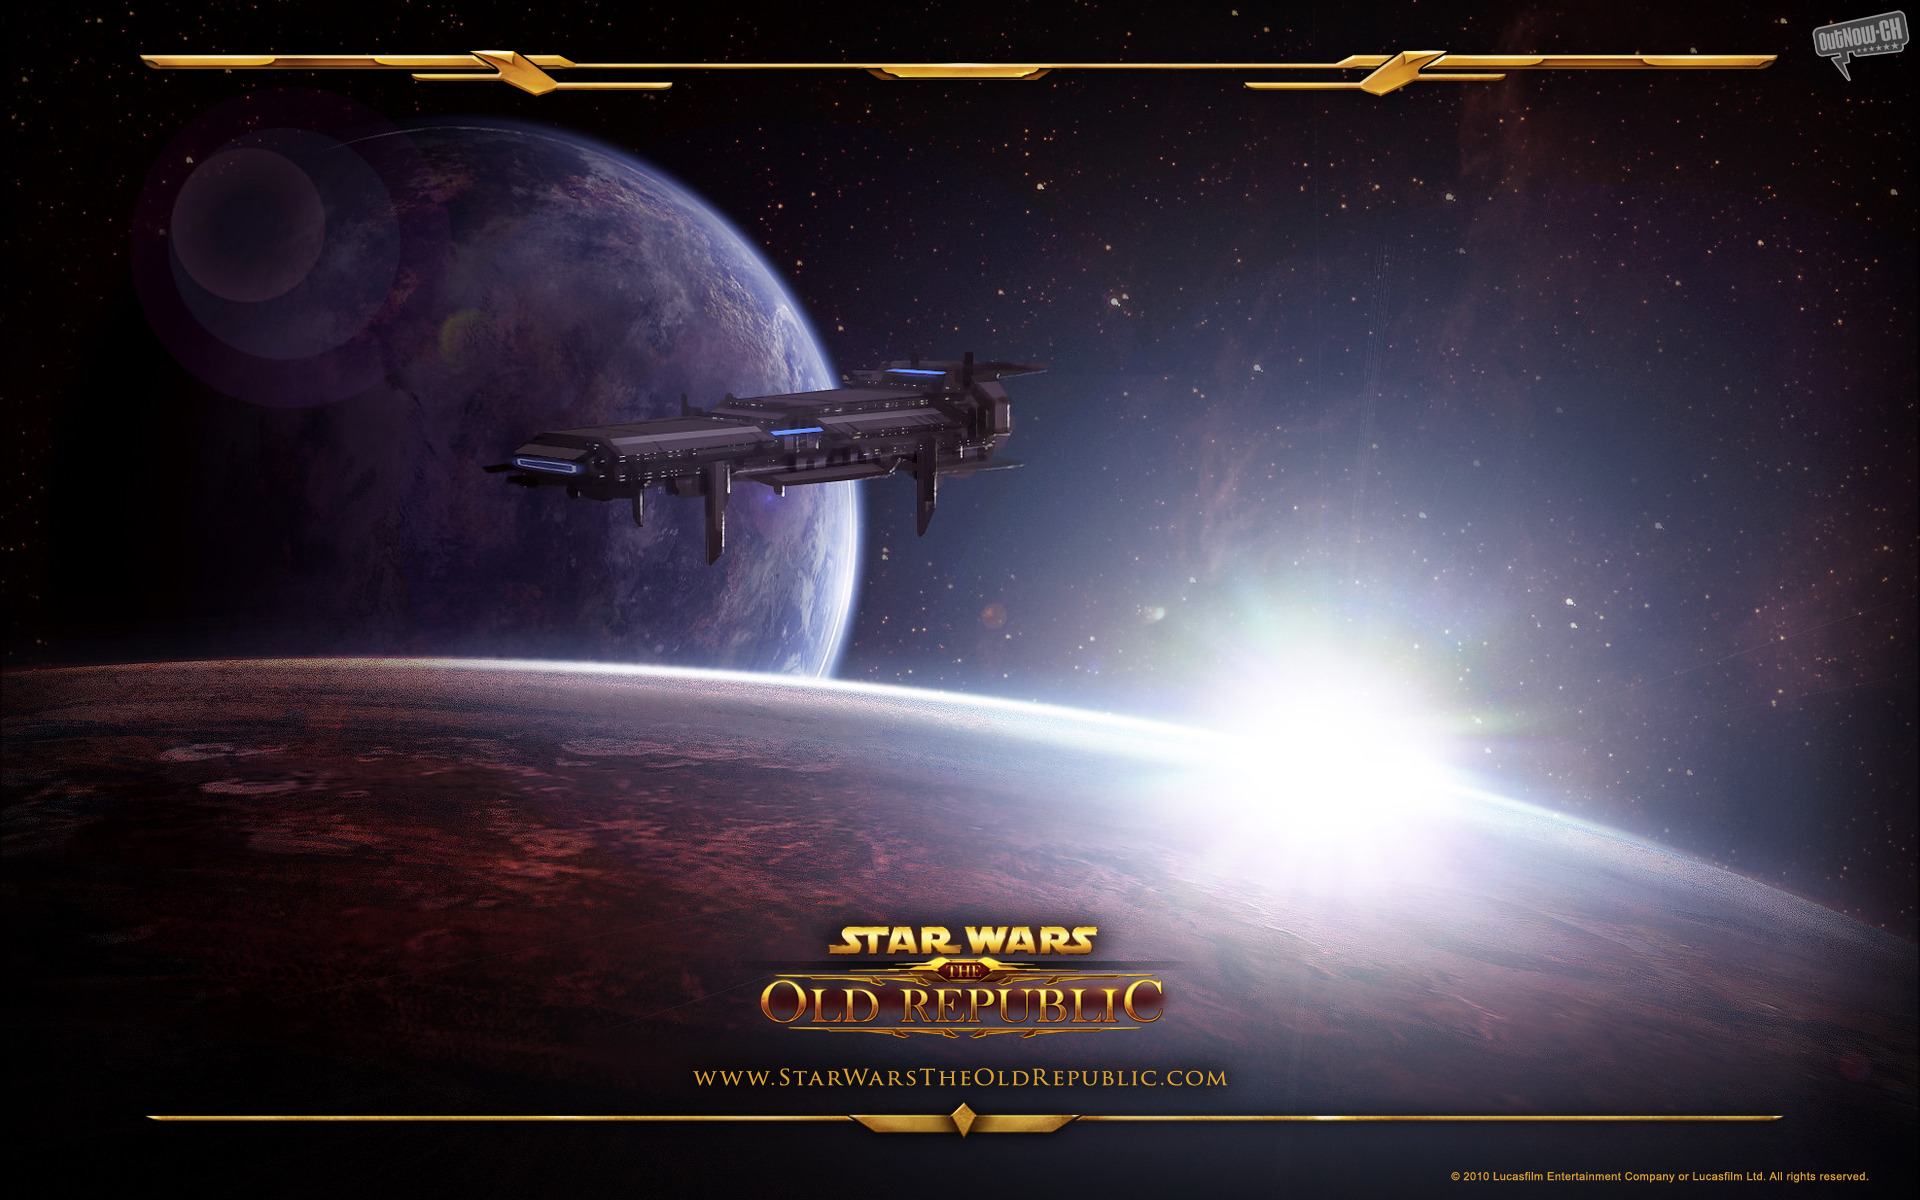 Star Wars The Old Republic Wallpapers Pictures Images 1920x1200